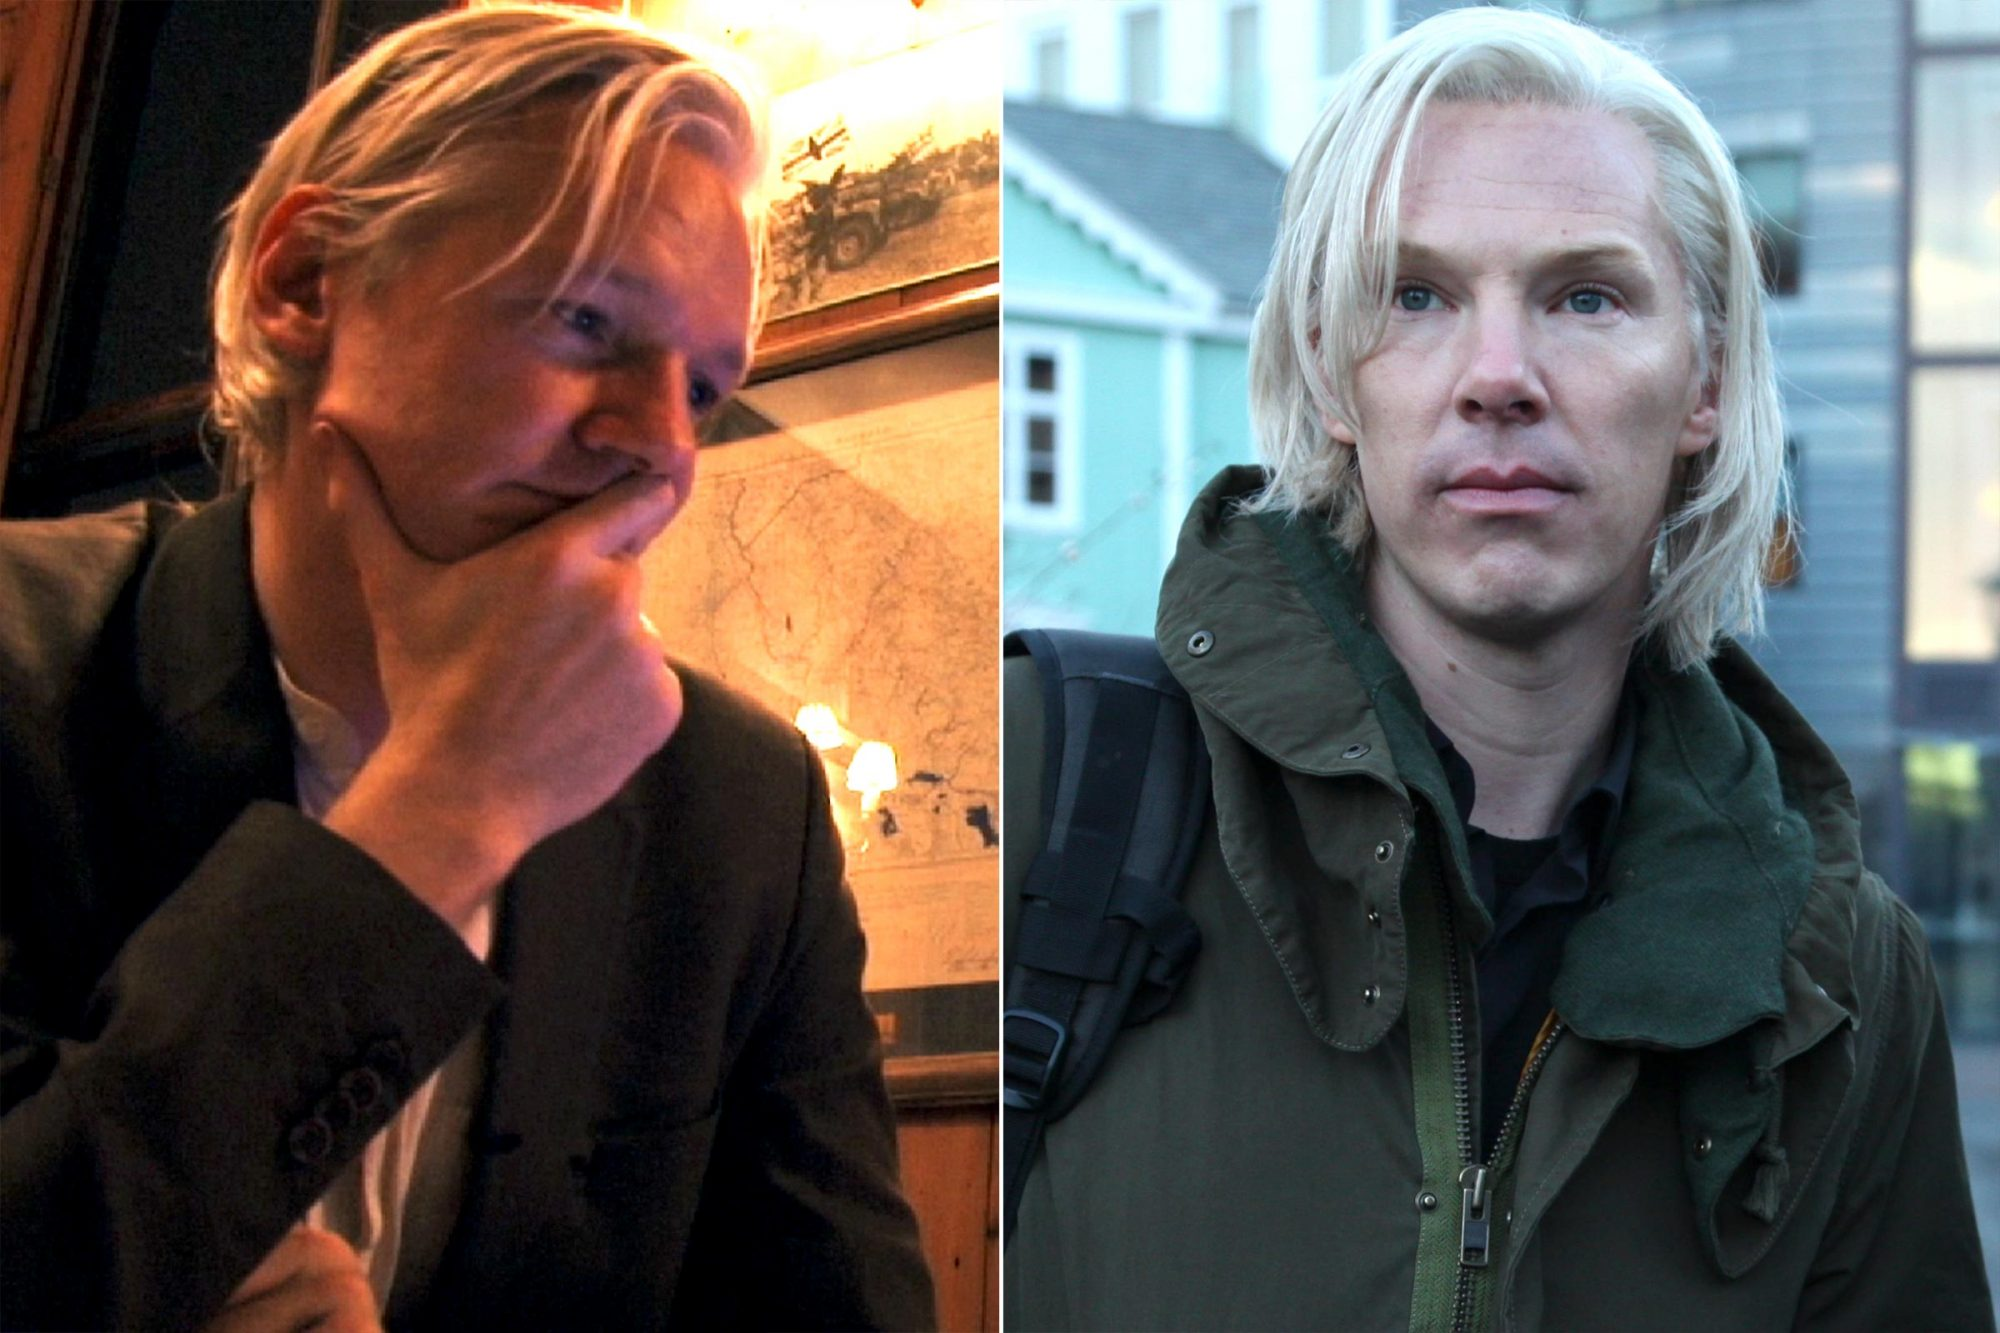 We Steal Secrets (2013) and The Fifth Estate (2013)